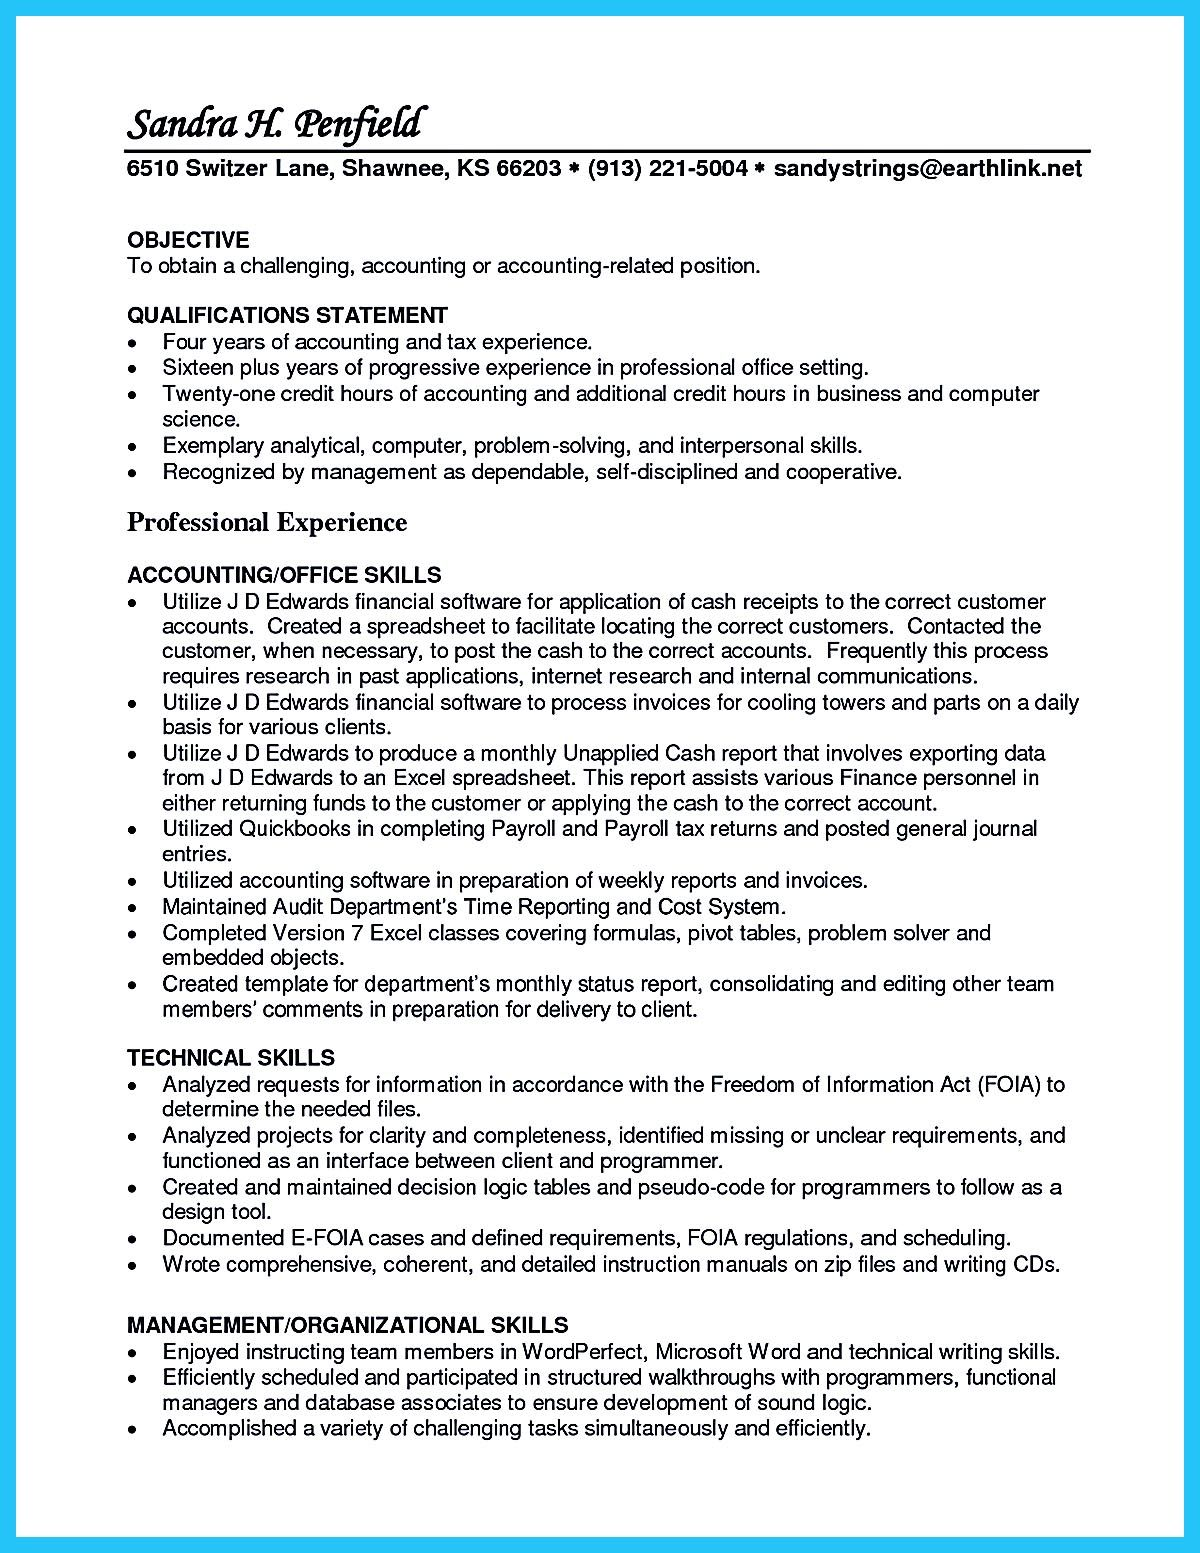 Sample Resume Management Position Pin On Resume Samples Pinterest Sample Resume Resume And